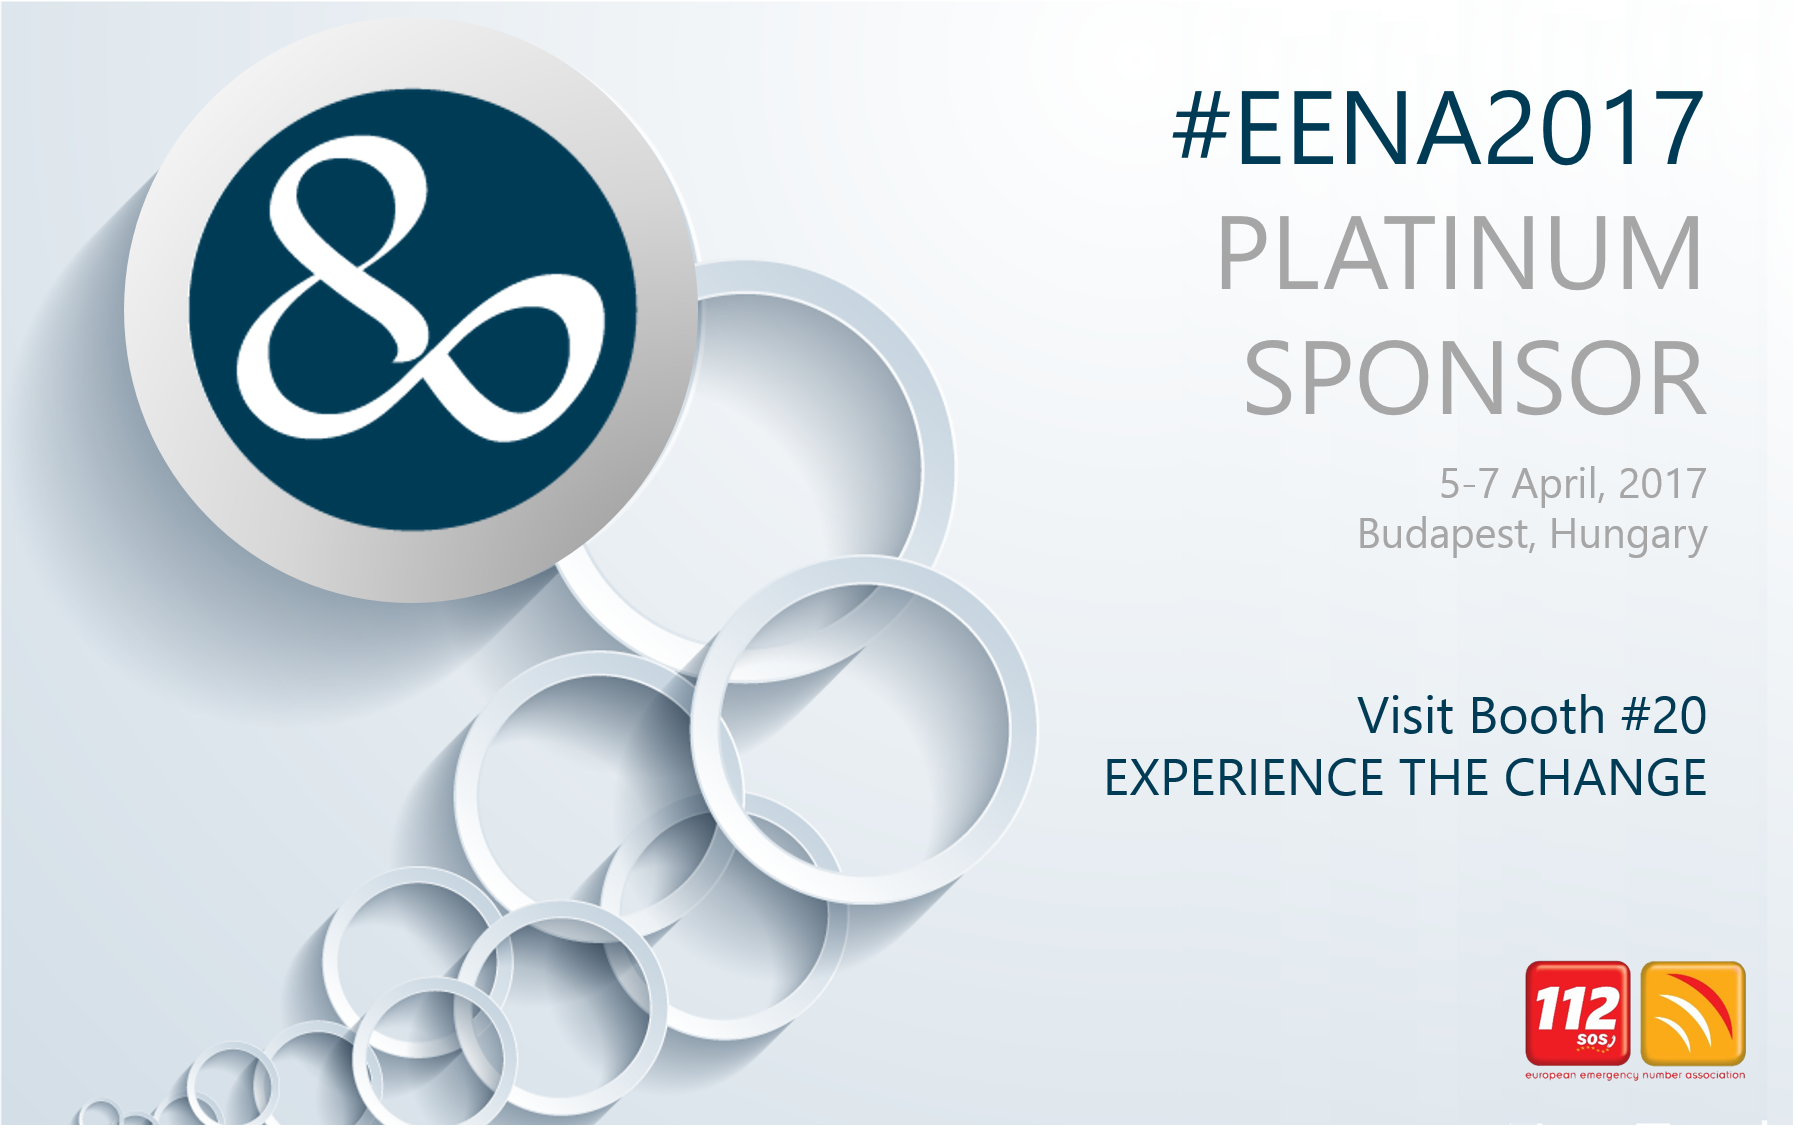 Beta 80 Group is the official platinum sponsor for EENA 2017 exhibition in Budapest